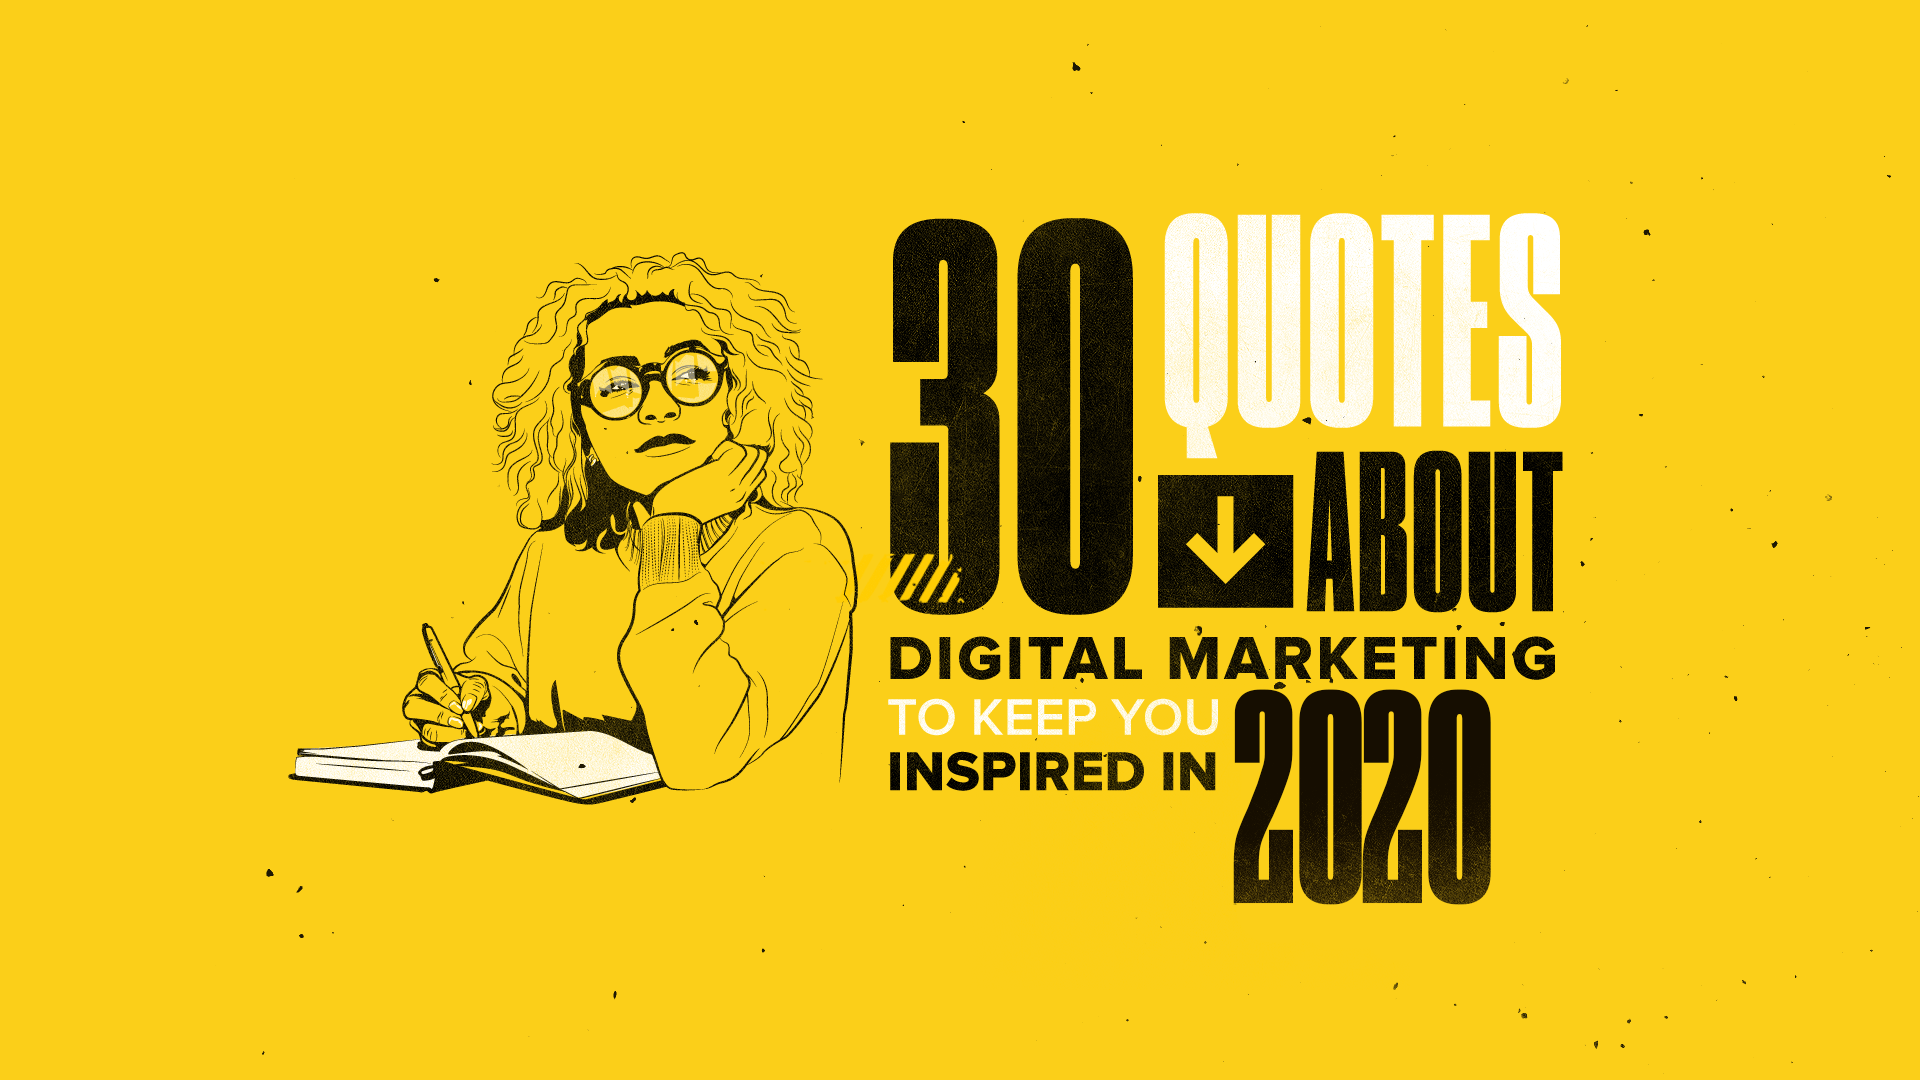 30 Digital Marketing Quotes To Inspire You In The New Year Big Drop Inc